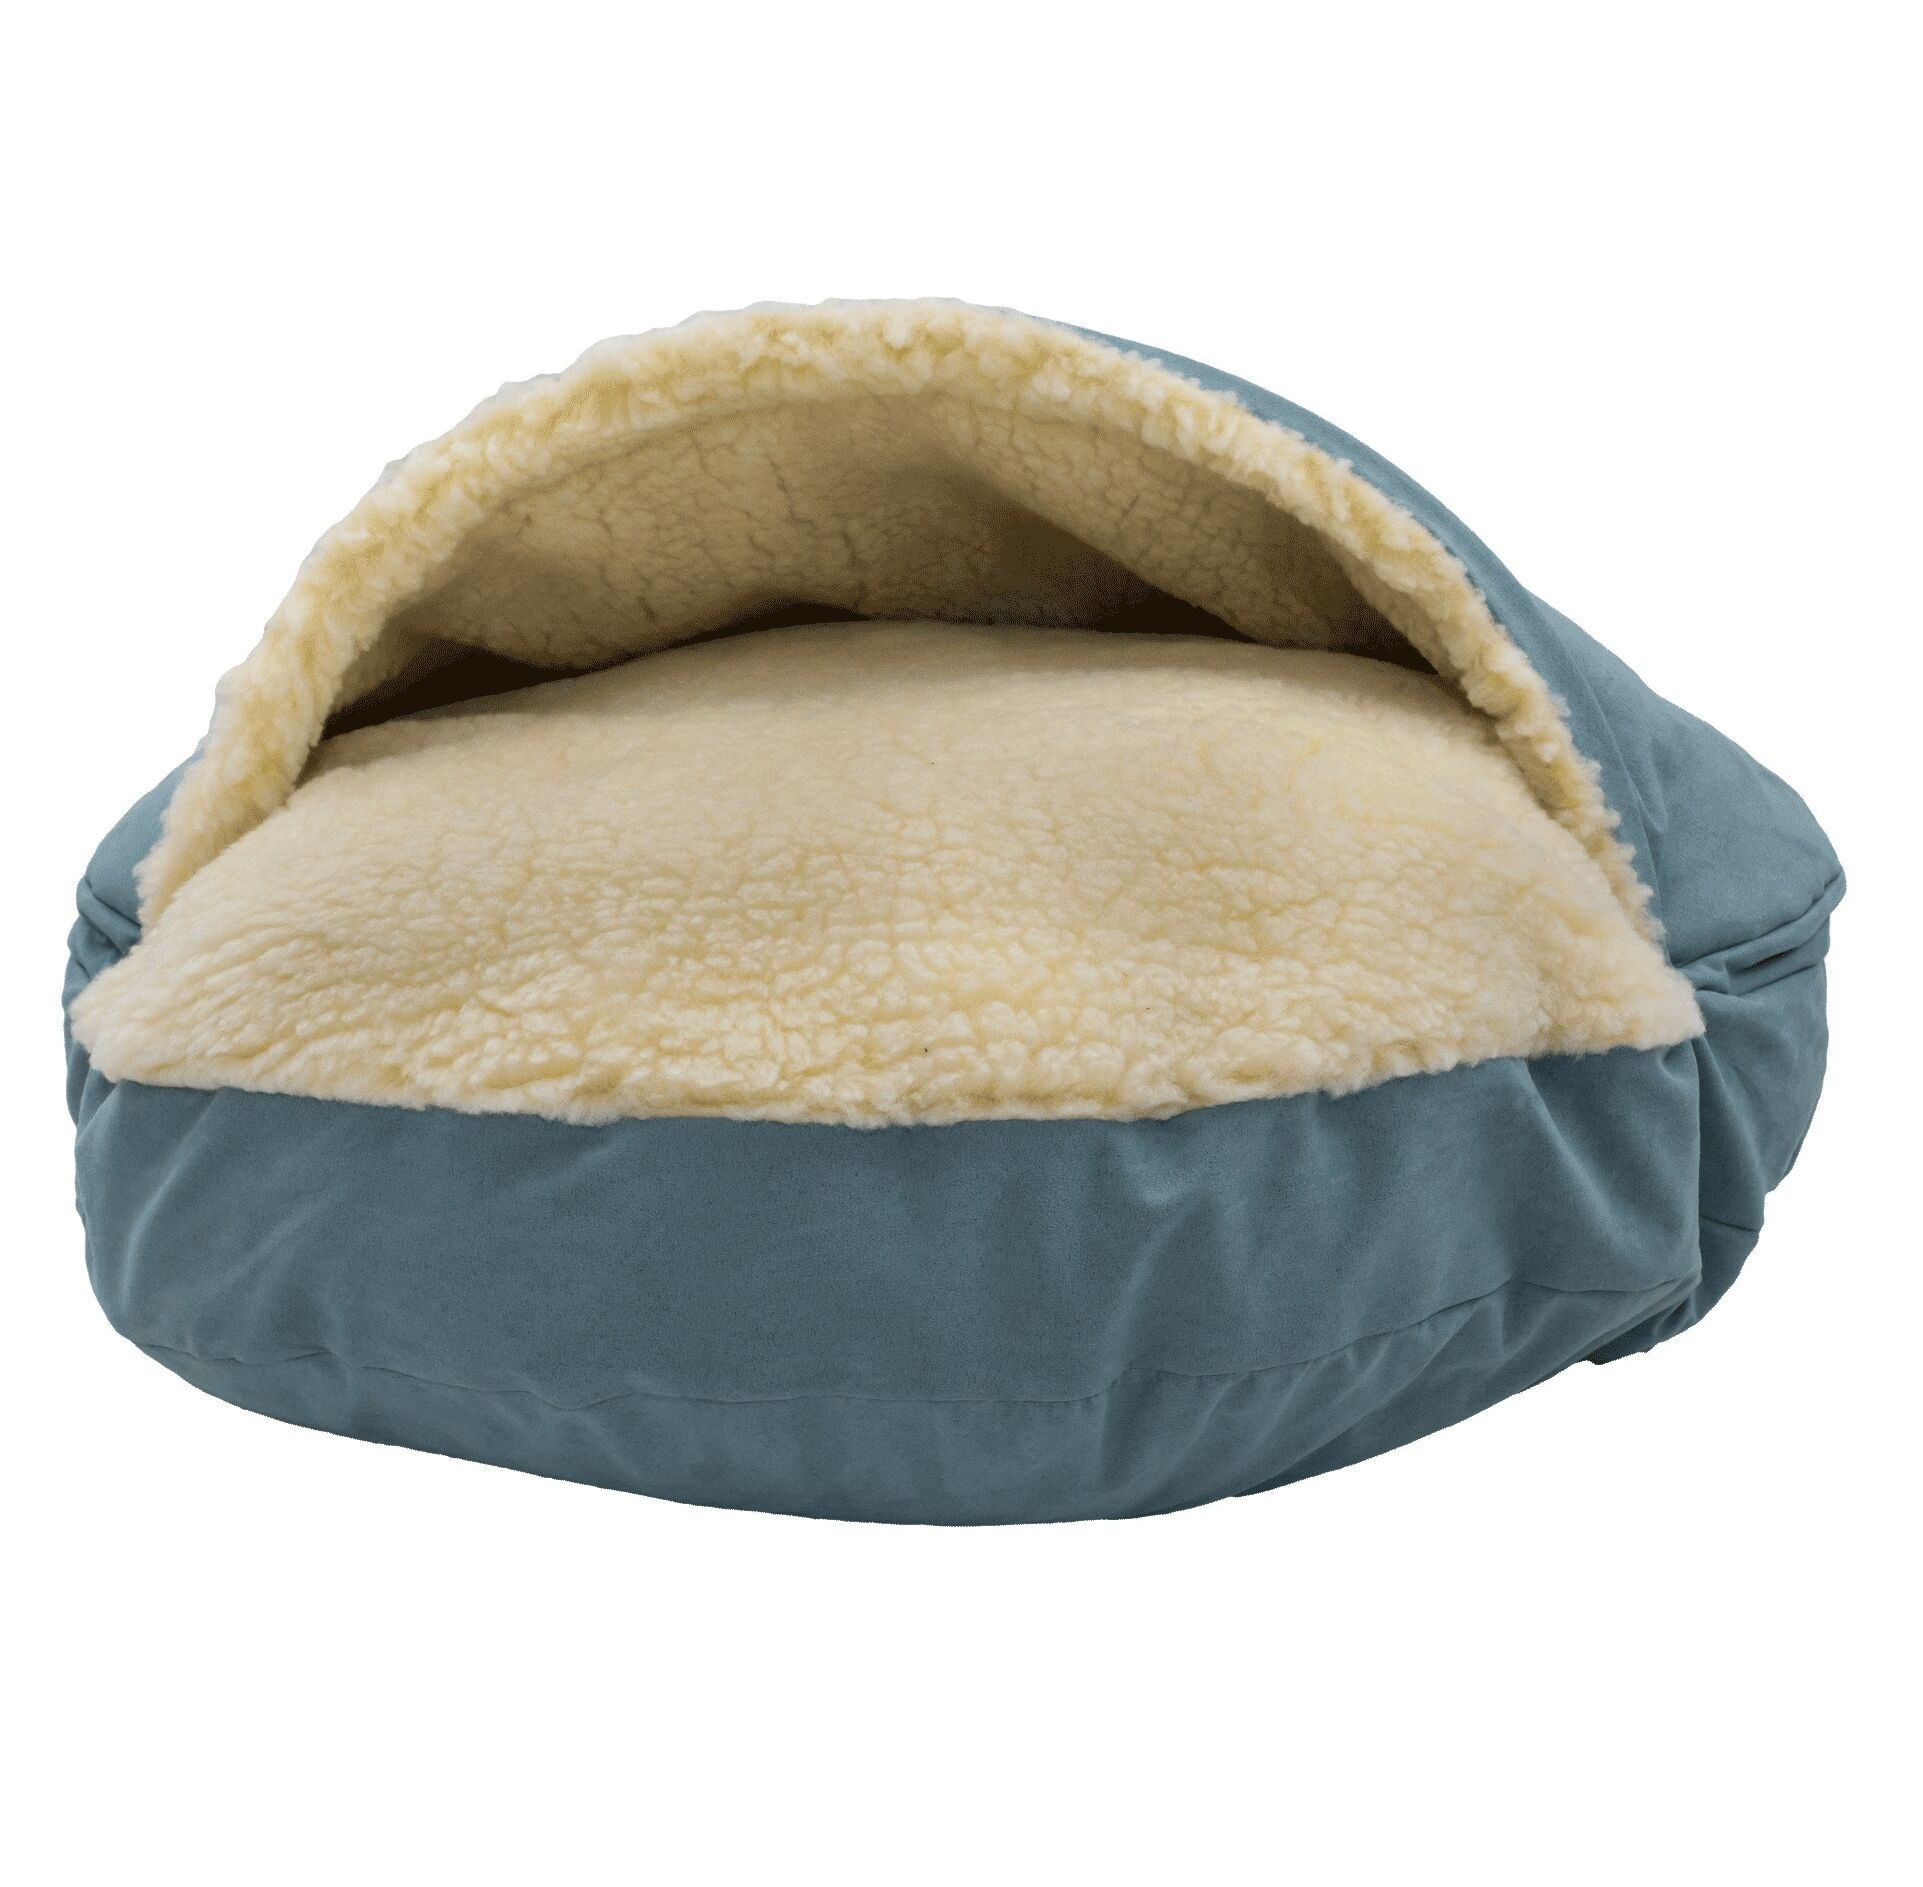 Luxury Cozy Cave Hooded/Dome Dog Bed Color: Aqua, Size: Large (35